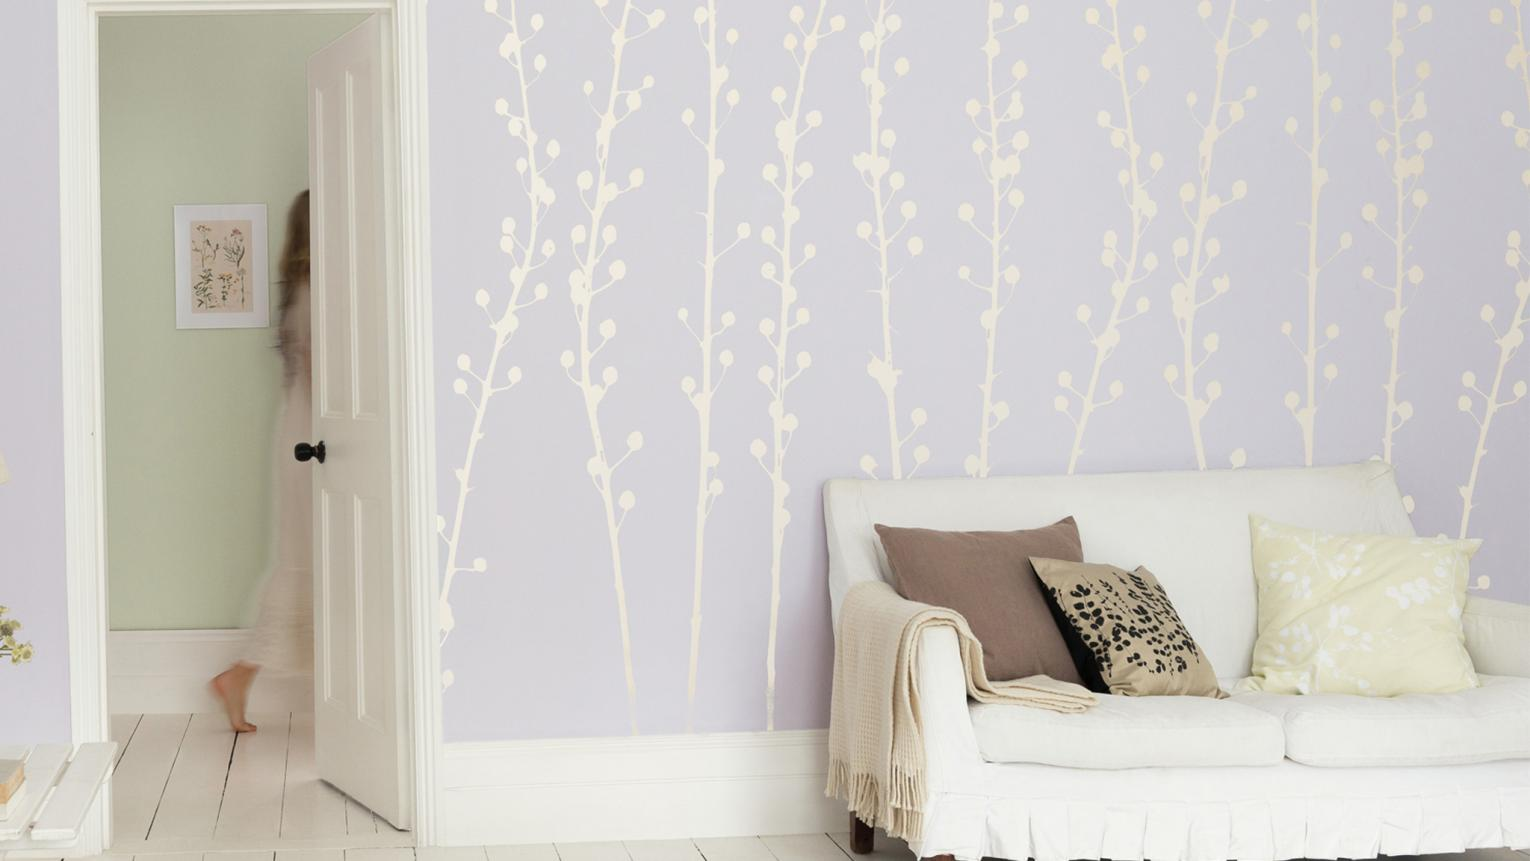 Looking for bedroom decorating ideas? Why not try using oversized floral wall stencils to create a bold botanical design.